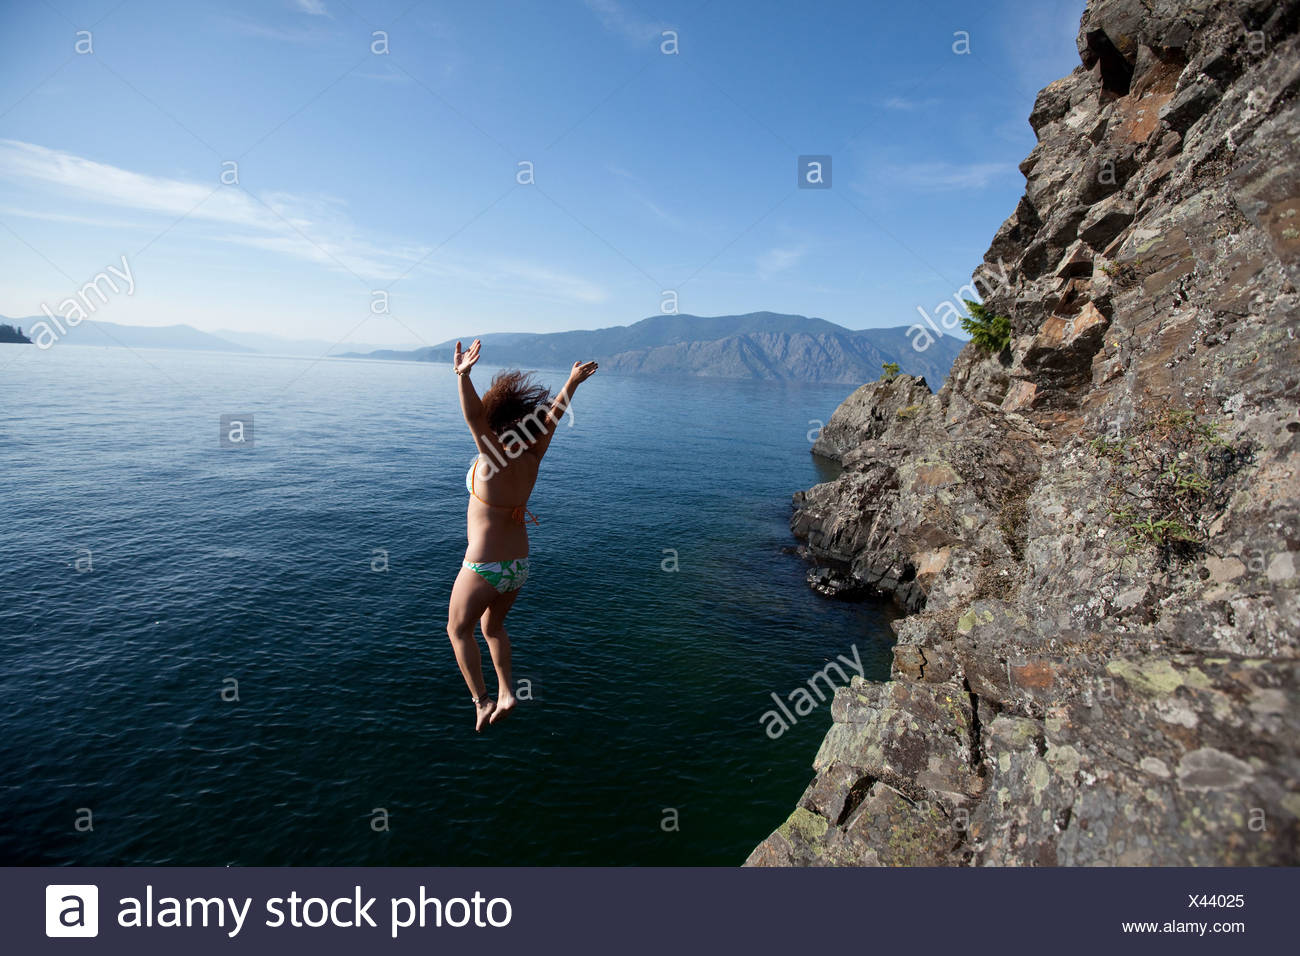 Female jumping off small cliff into a lake in Idaho. - Stock Image